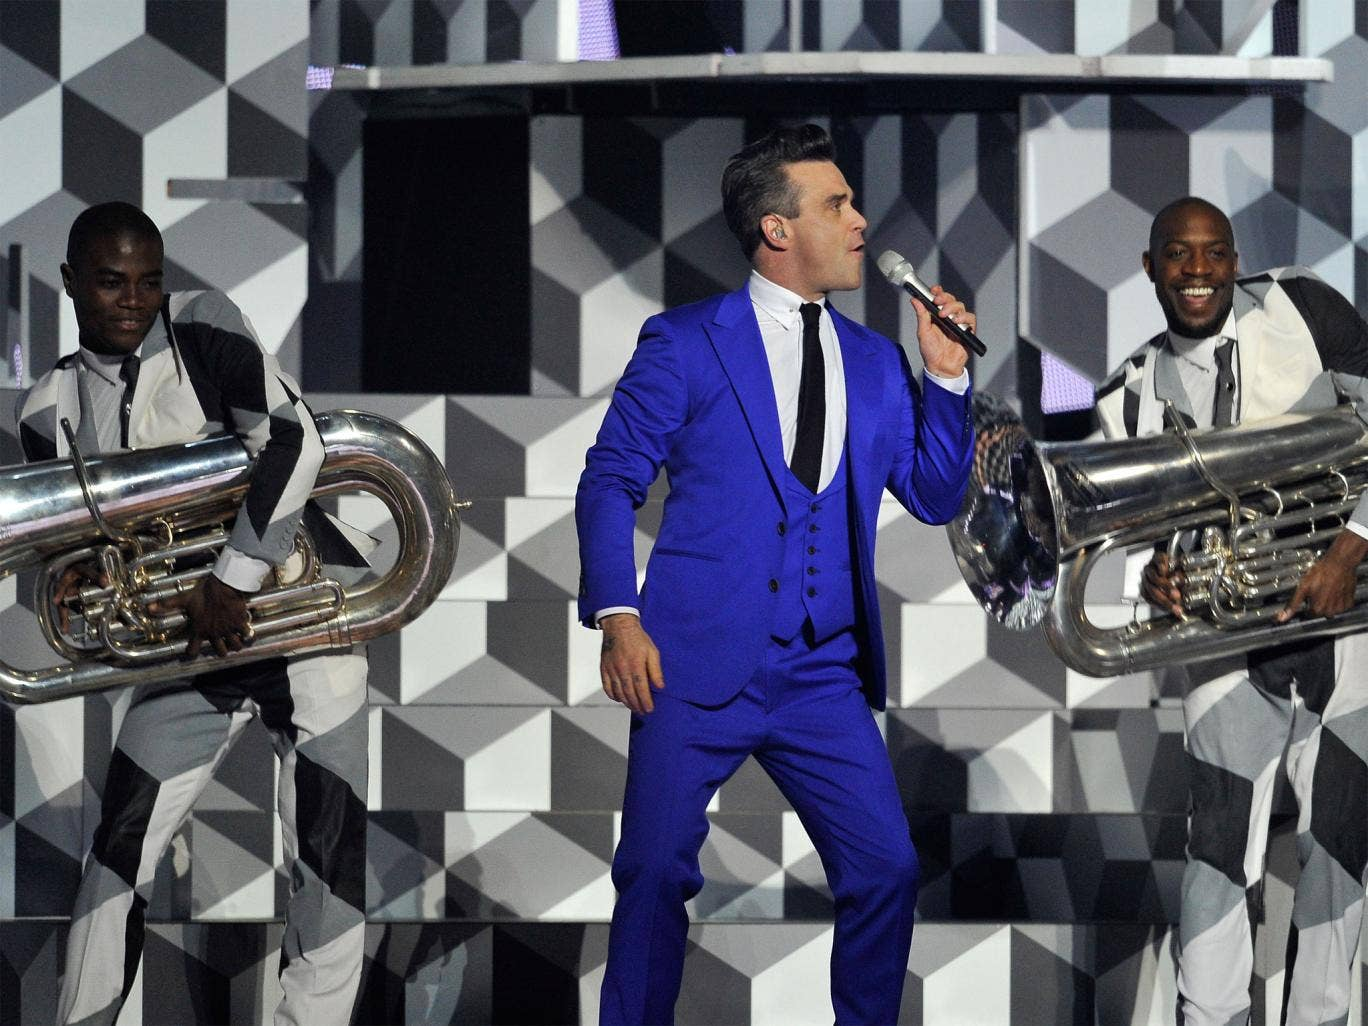 Robbie Williams performs on stage during the Brit Awards